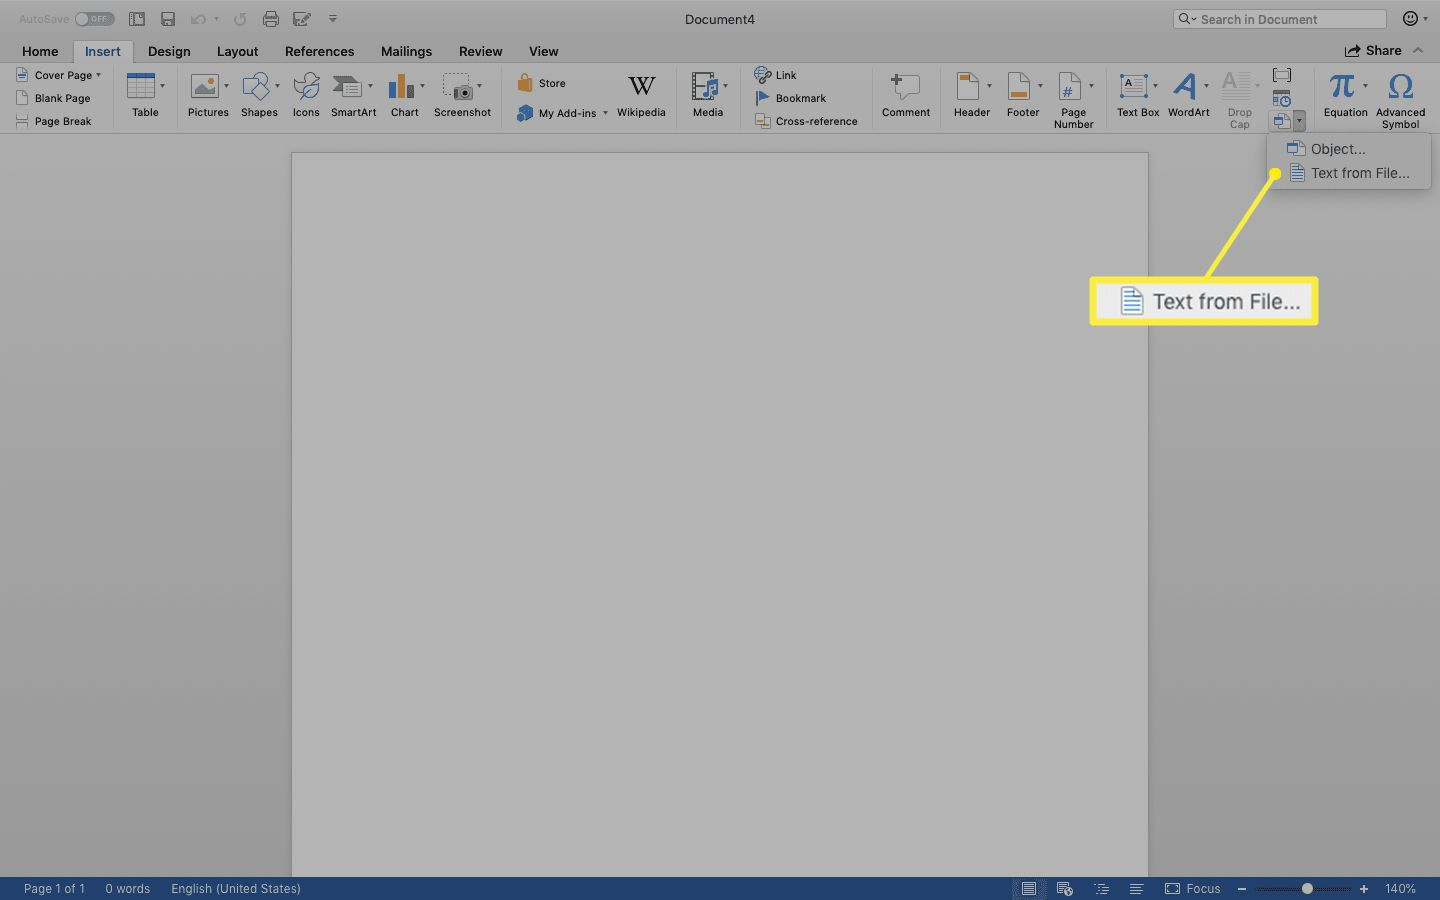 Text from File selected in the menu under the Object icon